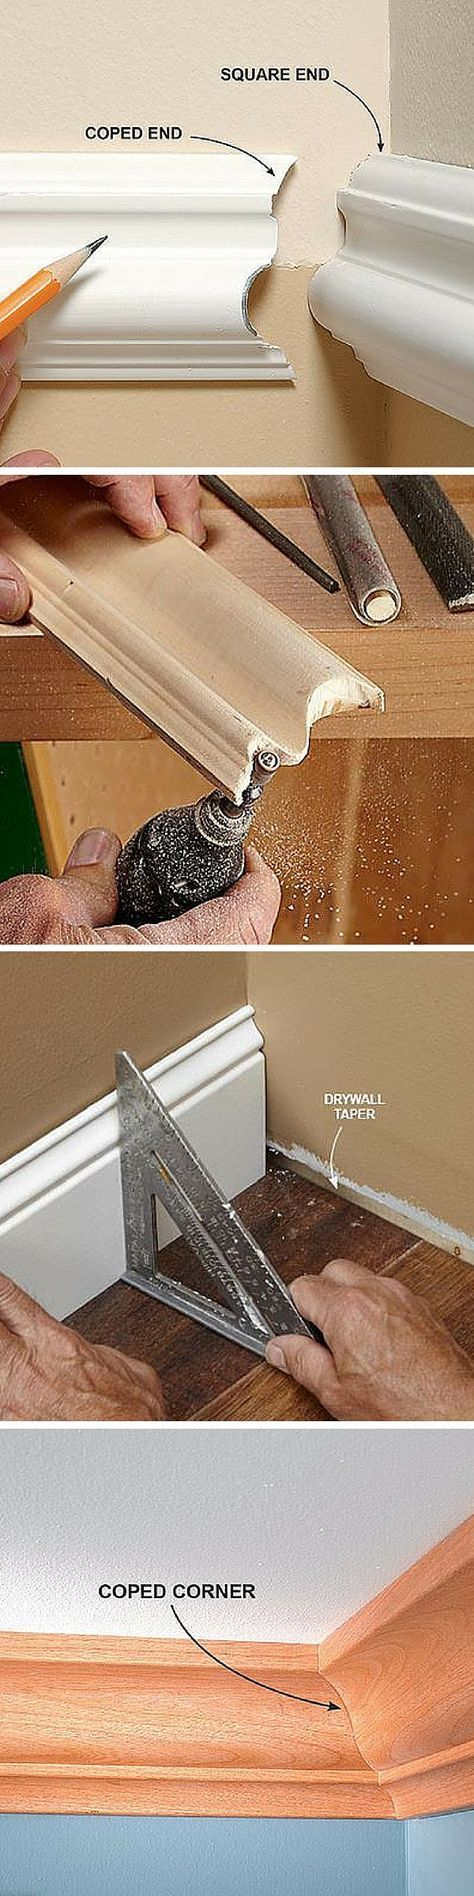 The secret for a glove-tight fit for trim corners is a coped joint. With this technique you can even make complex crown moldings fit without leaving gaps. :